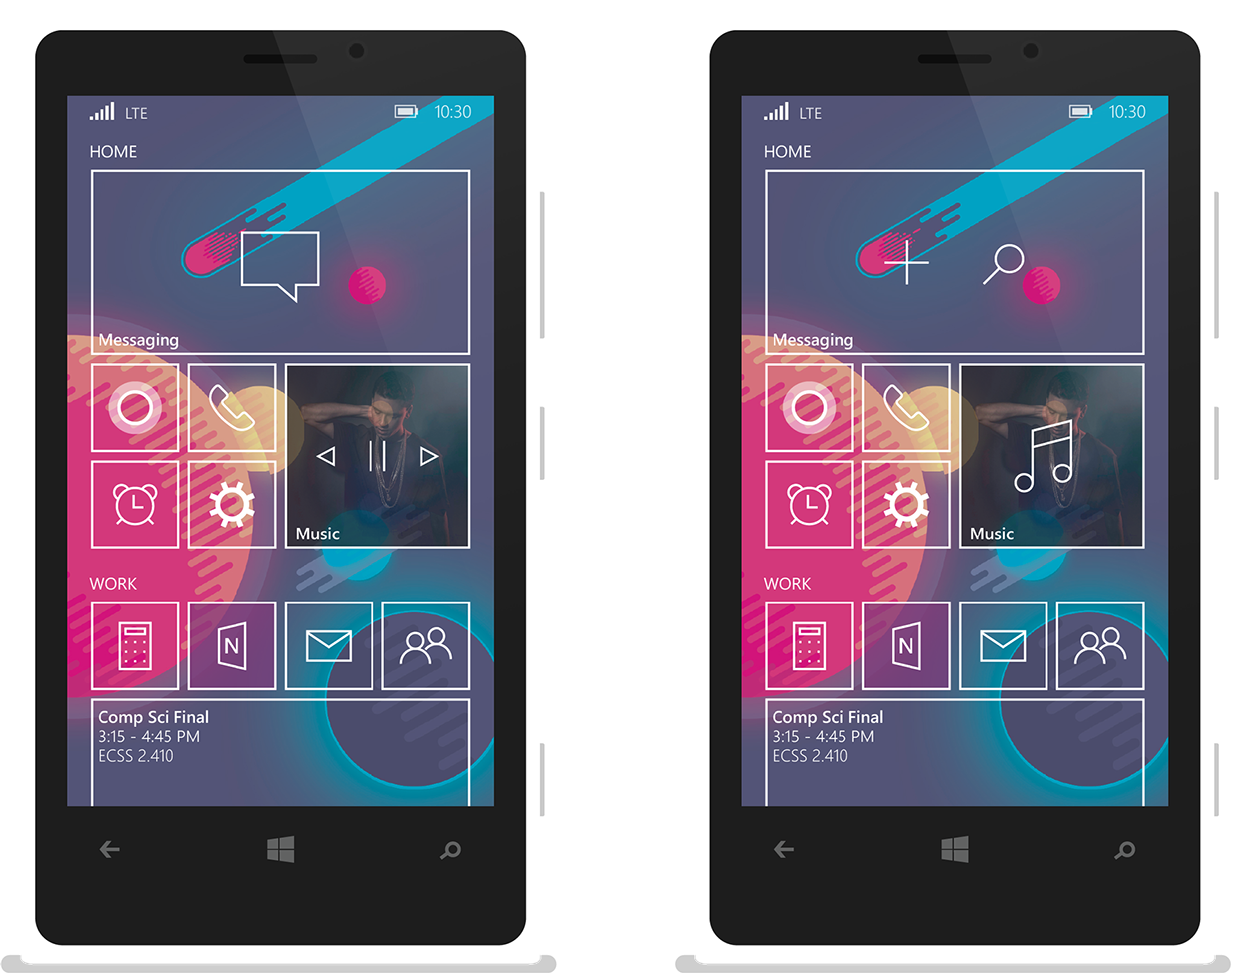 Windows 10 for mobile is here in a wonderful concept for Windows phone